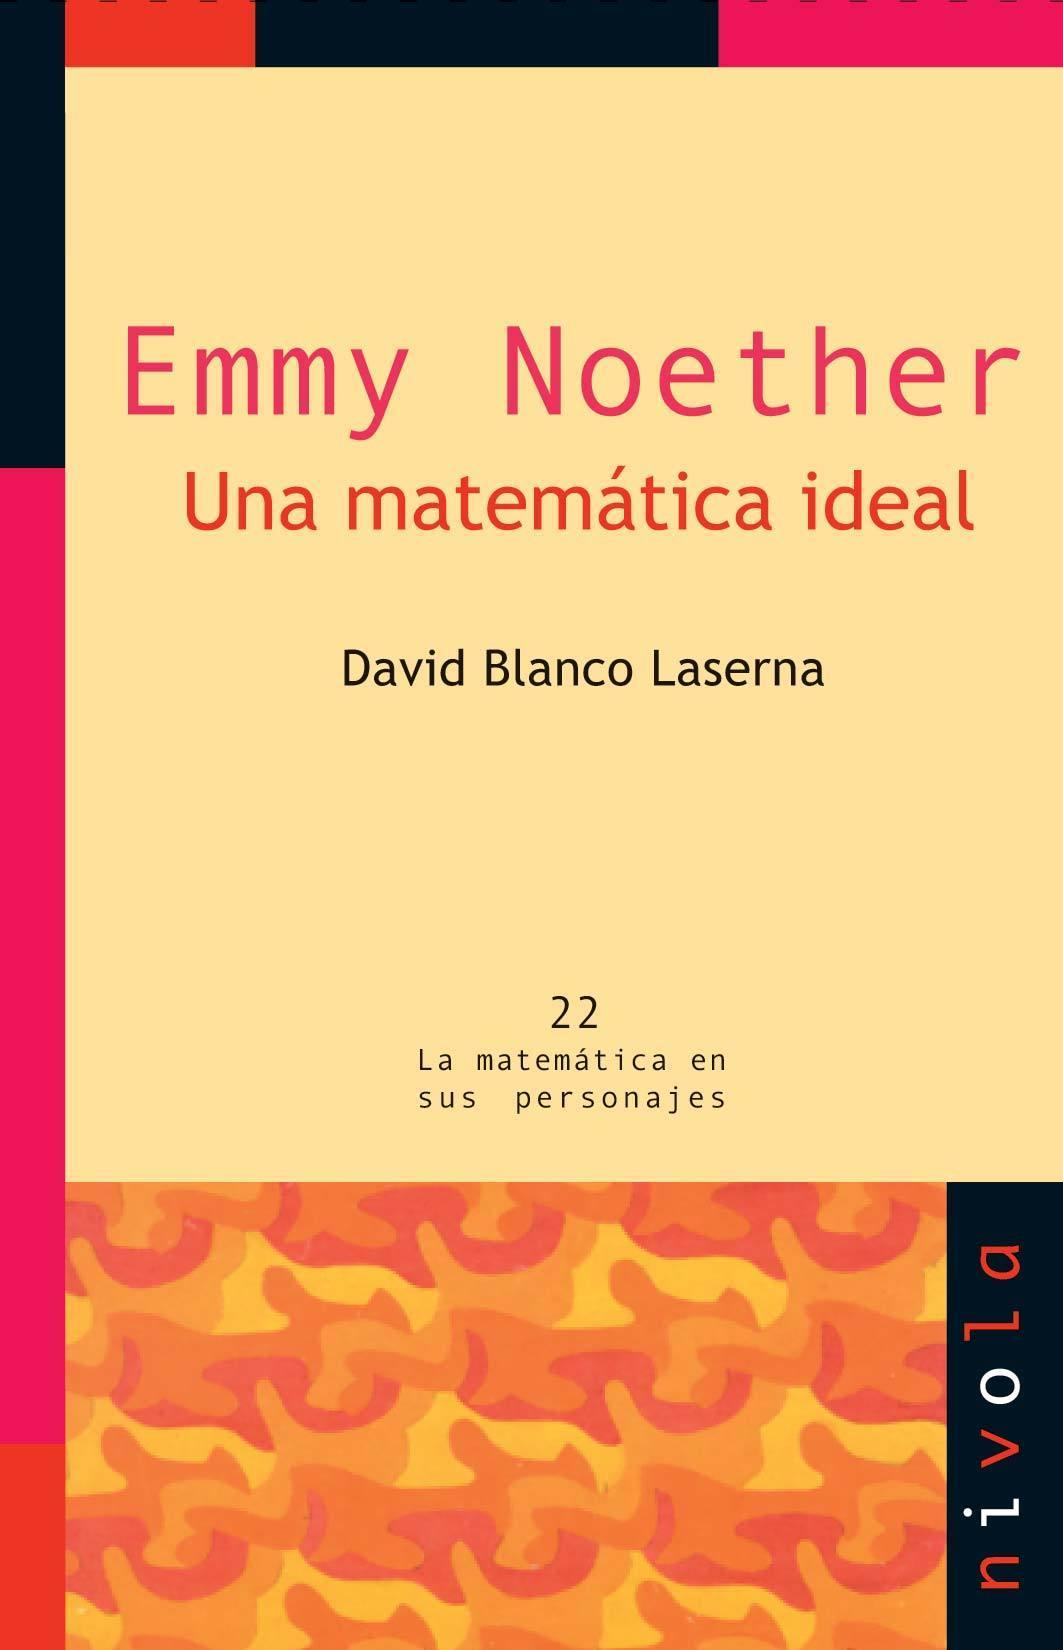 Emmy Noether. David Blanco Laserna